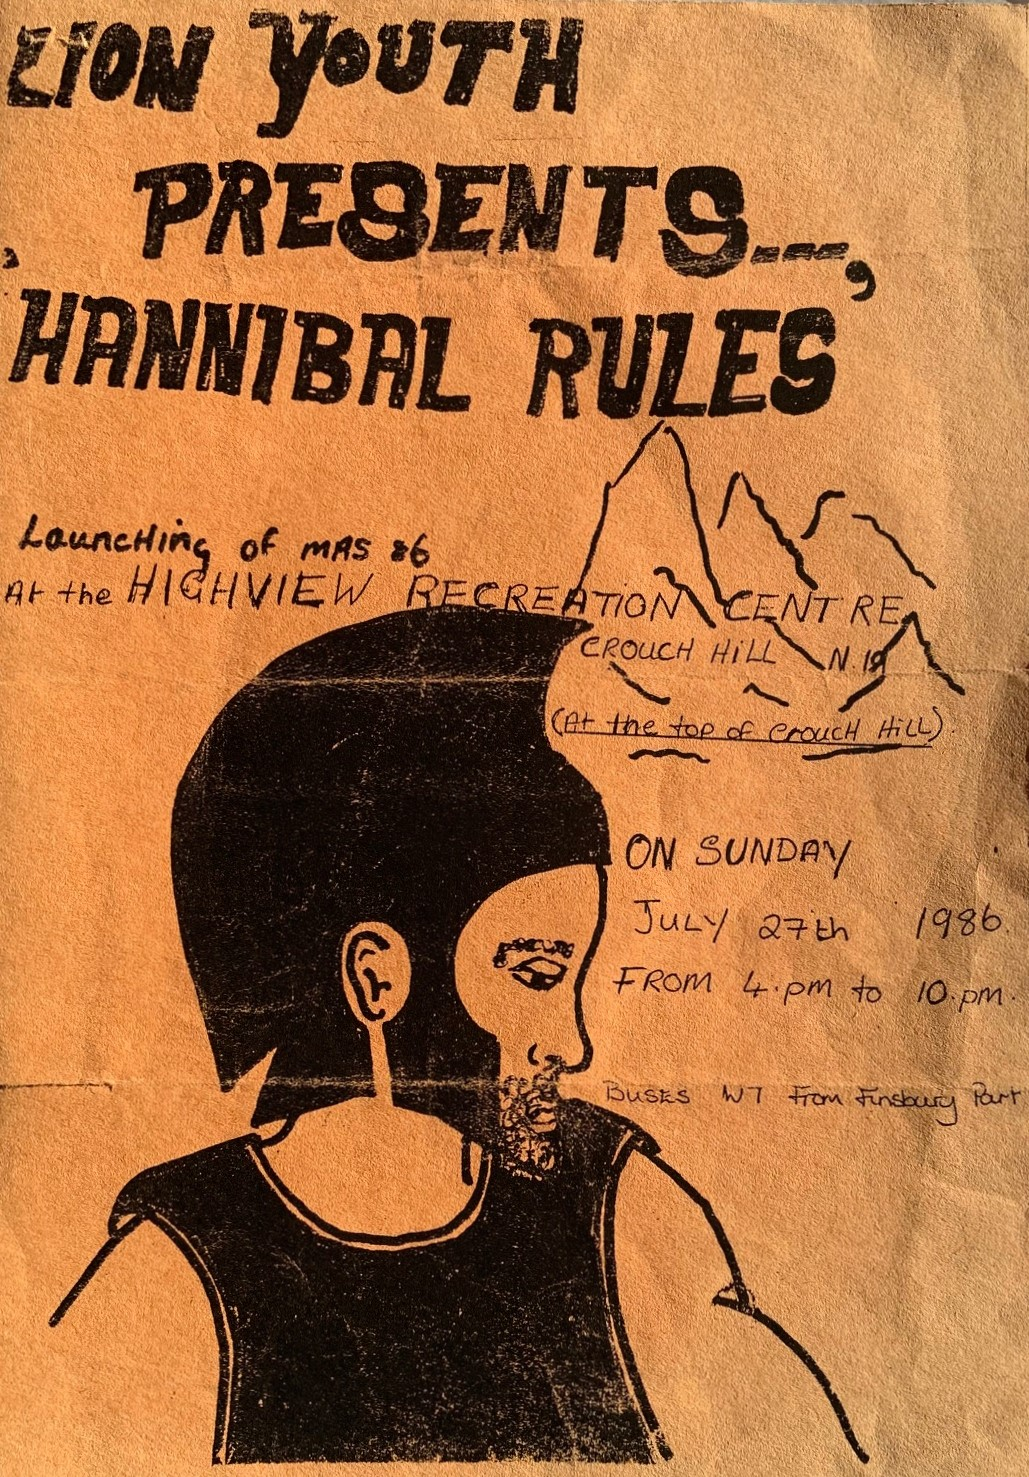 Hand-drawn flyer printed on yellow paper depicting individual dressed as Hannibal.